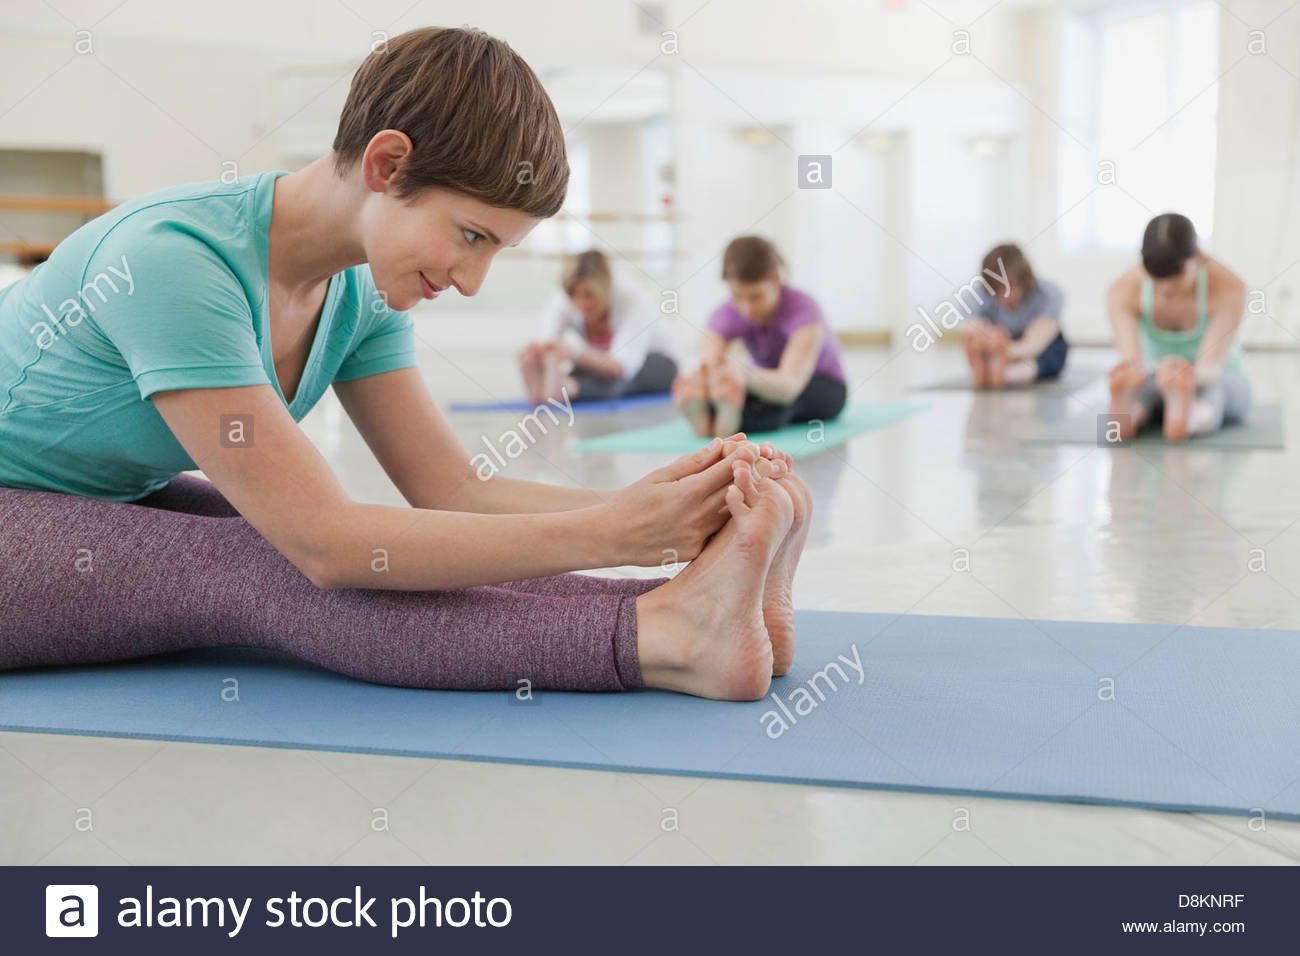 Woman instructor practicing yoga with students in yoga studio - Stock Image